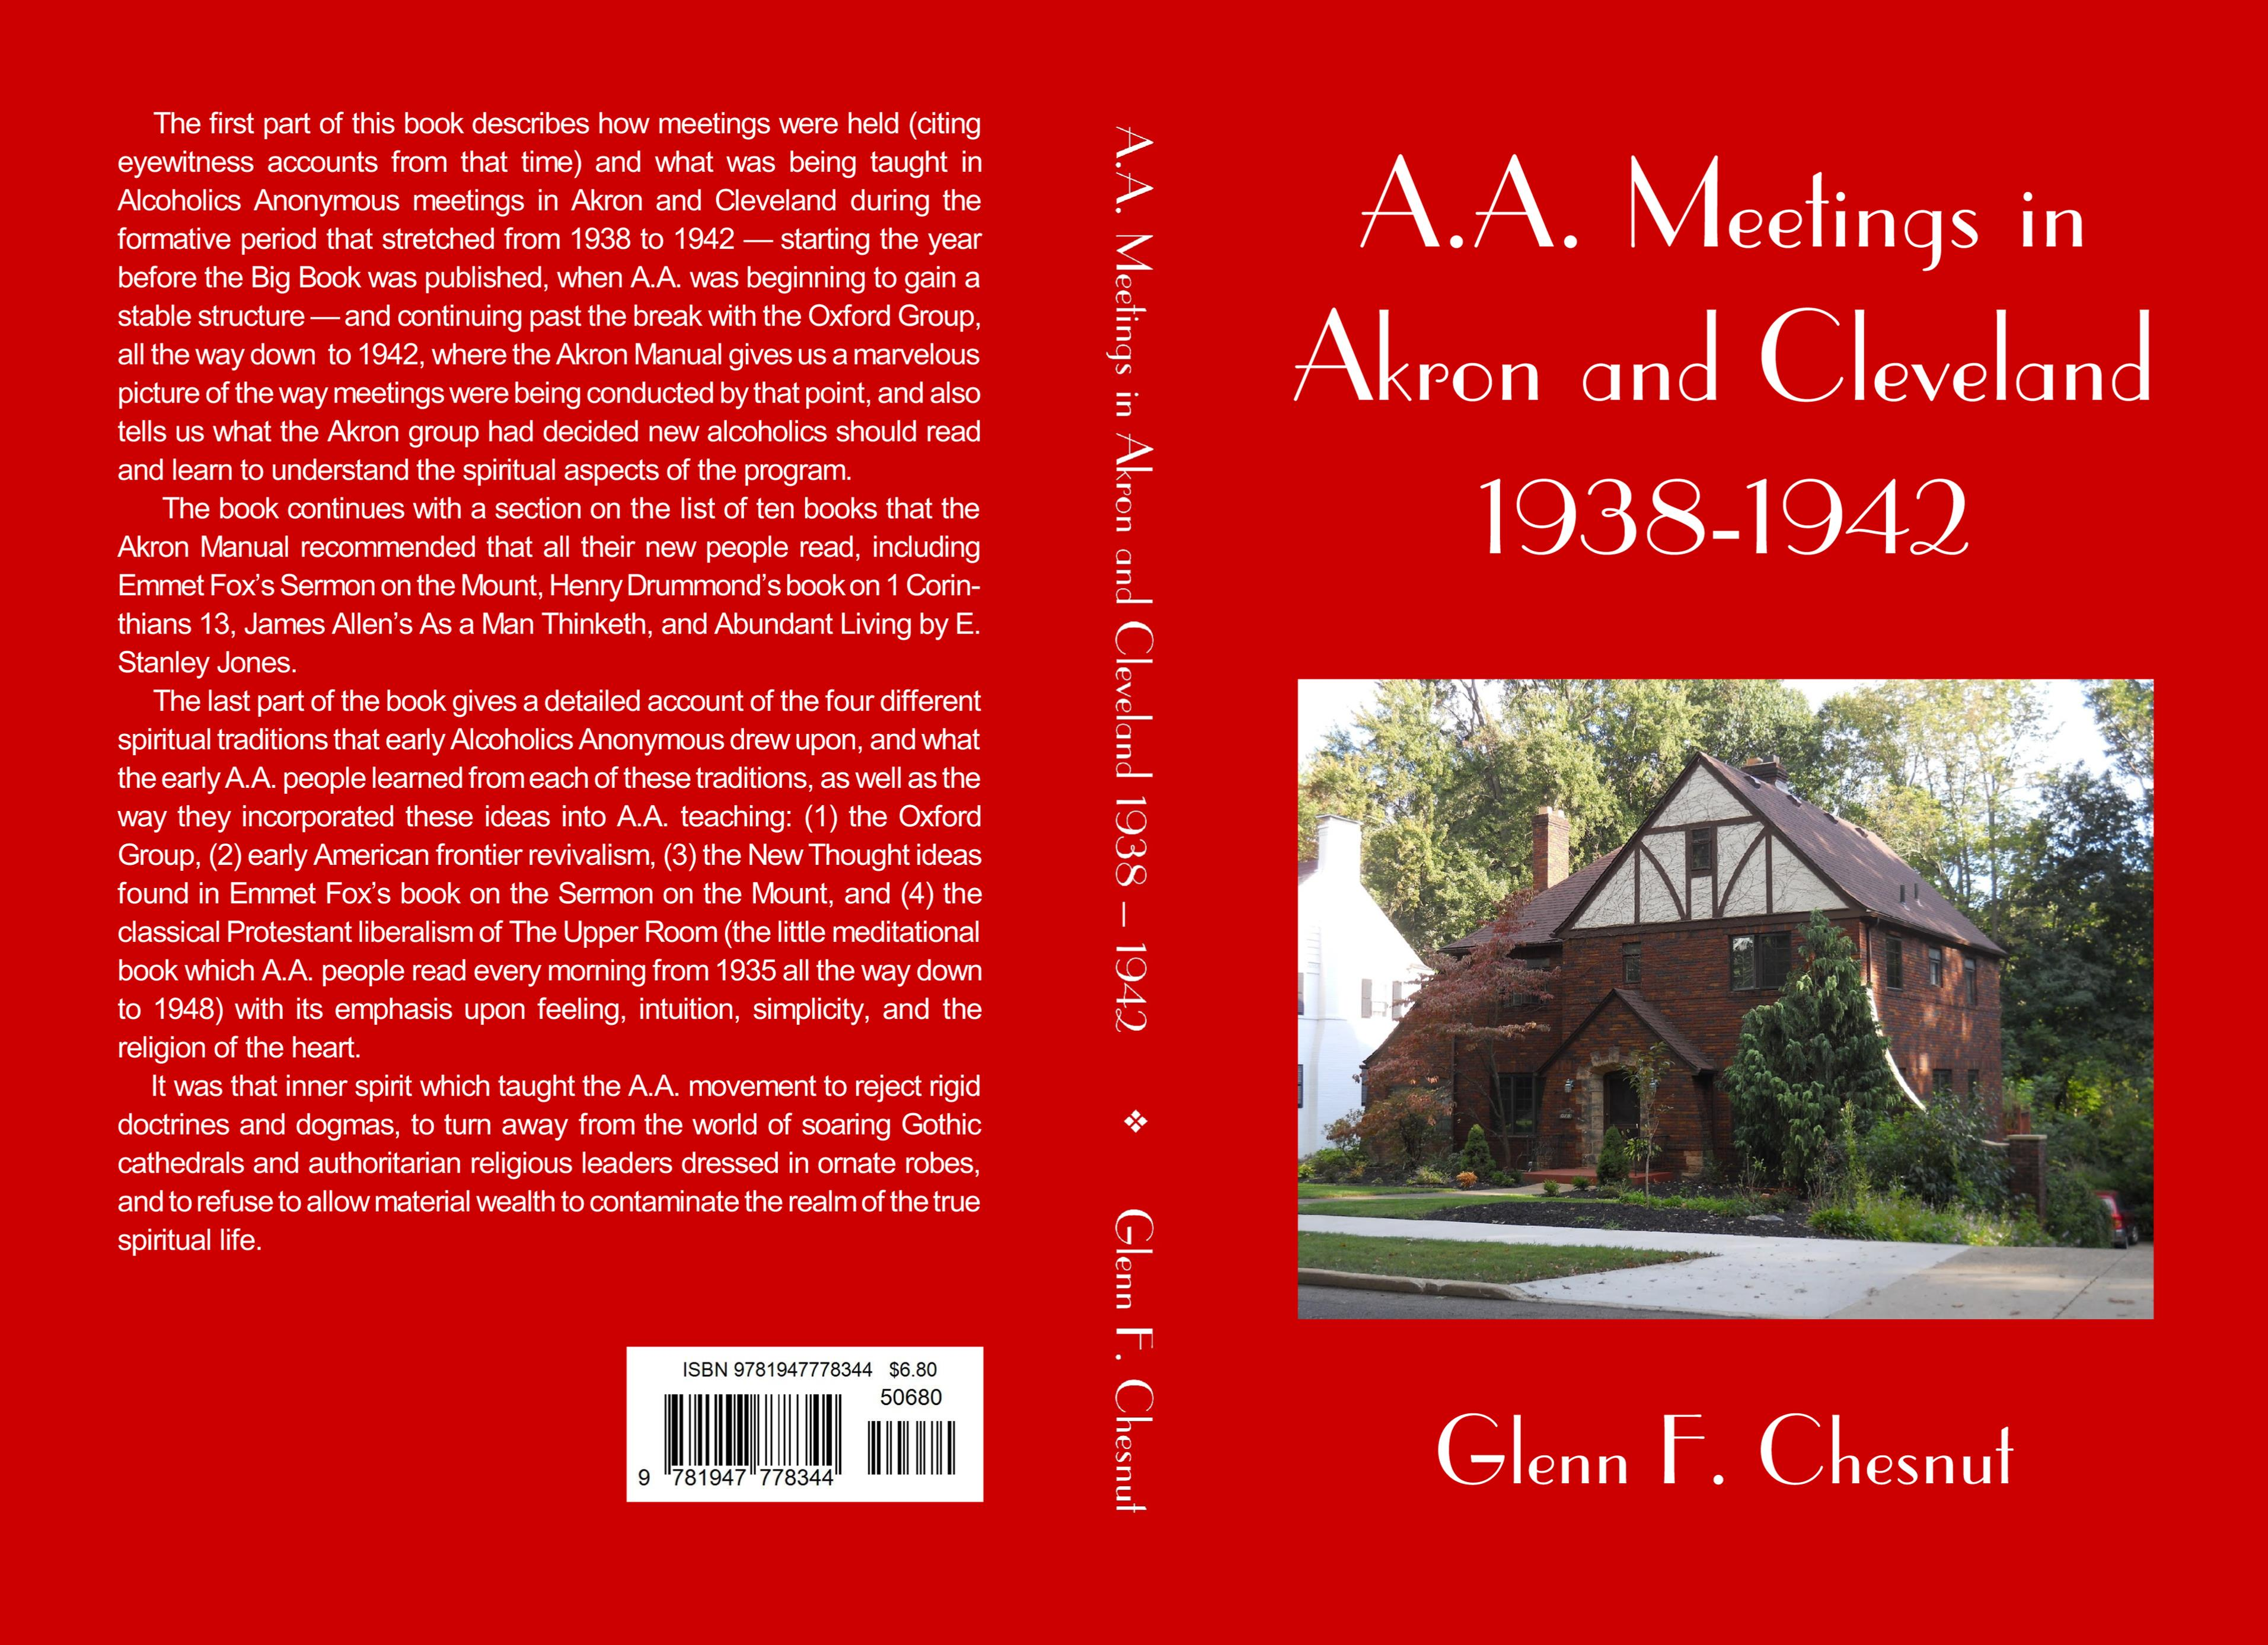 A.A. Meetings in Akron and Cleveland 1938-1942 cover image